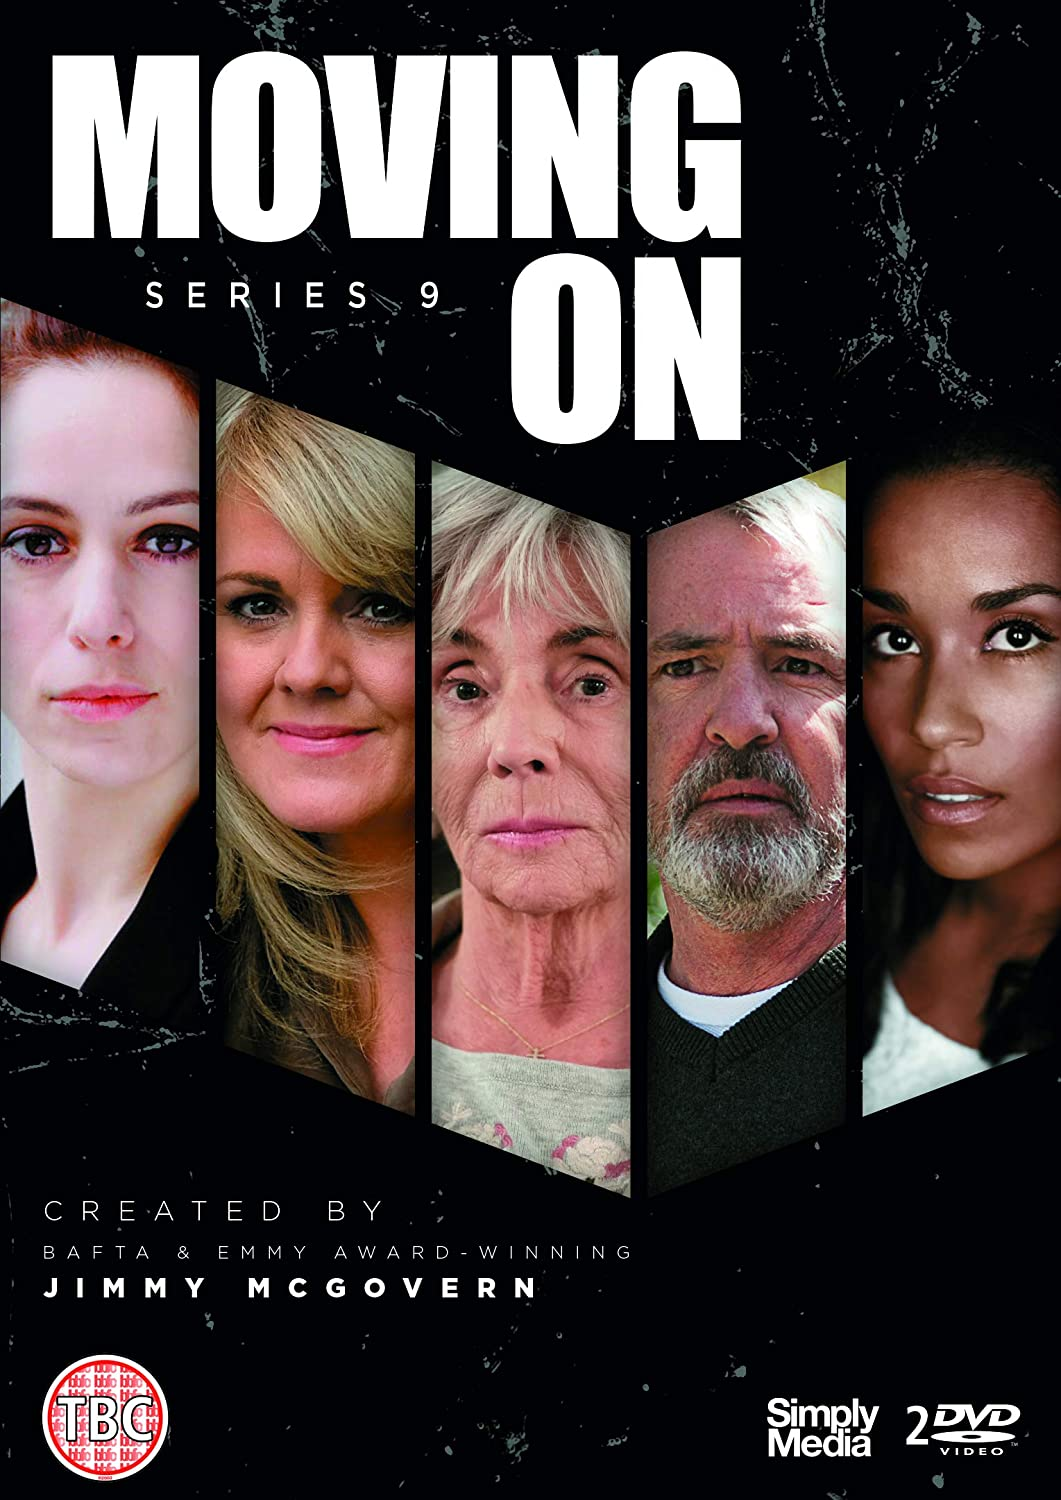 Moving On: Series 9